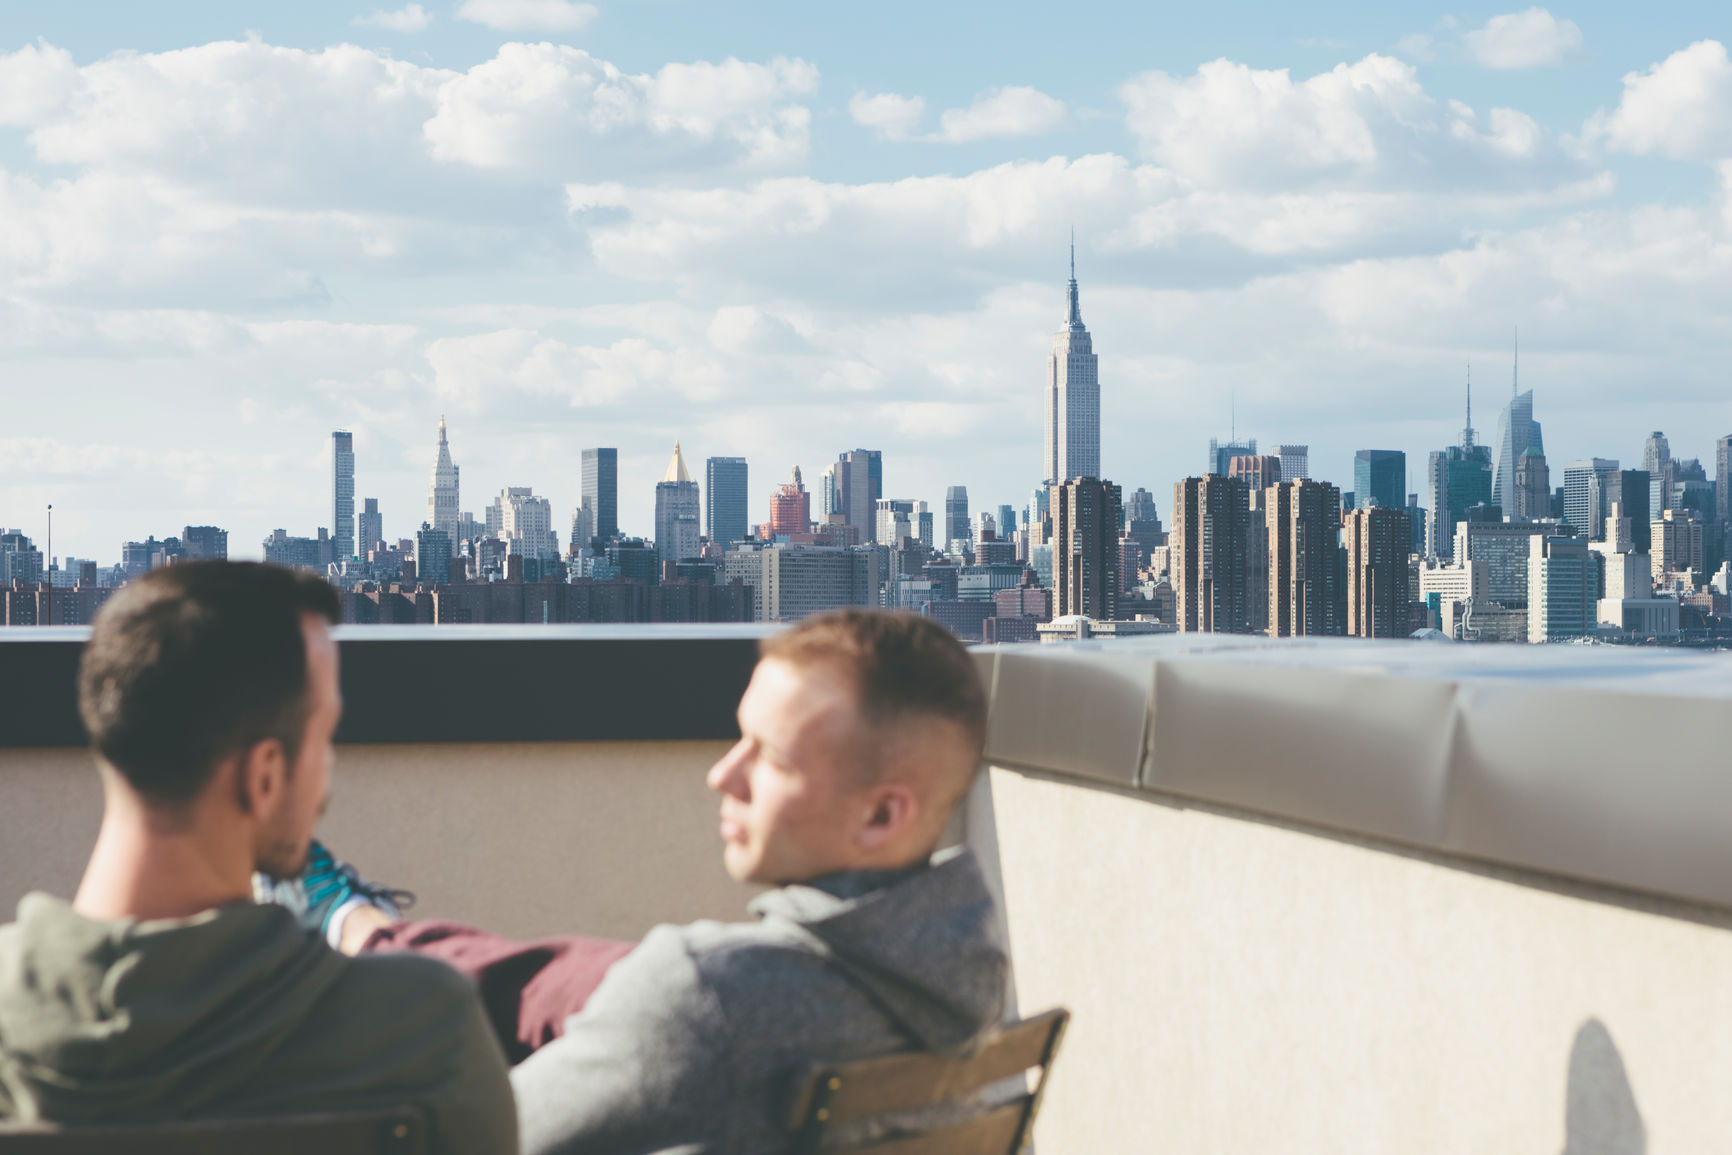 Gay Men Friends Hanging Out On A Rooftop Enjoying The View In New York